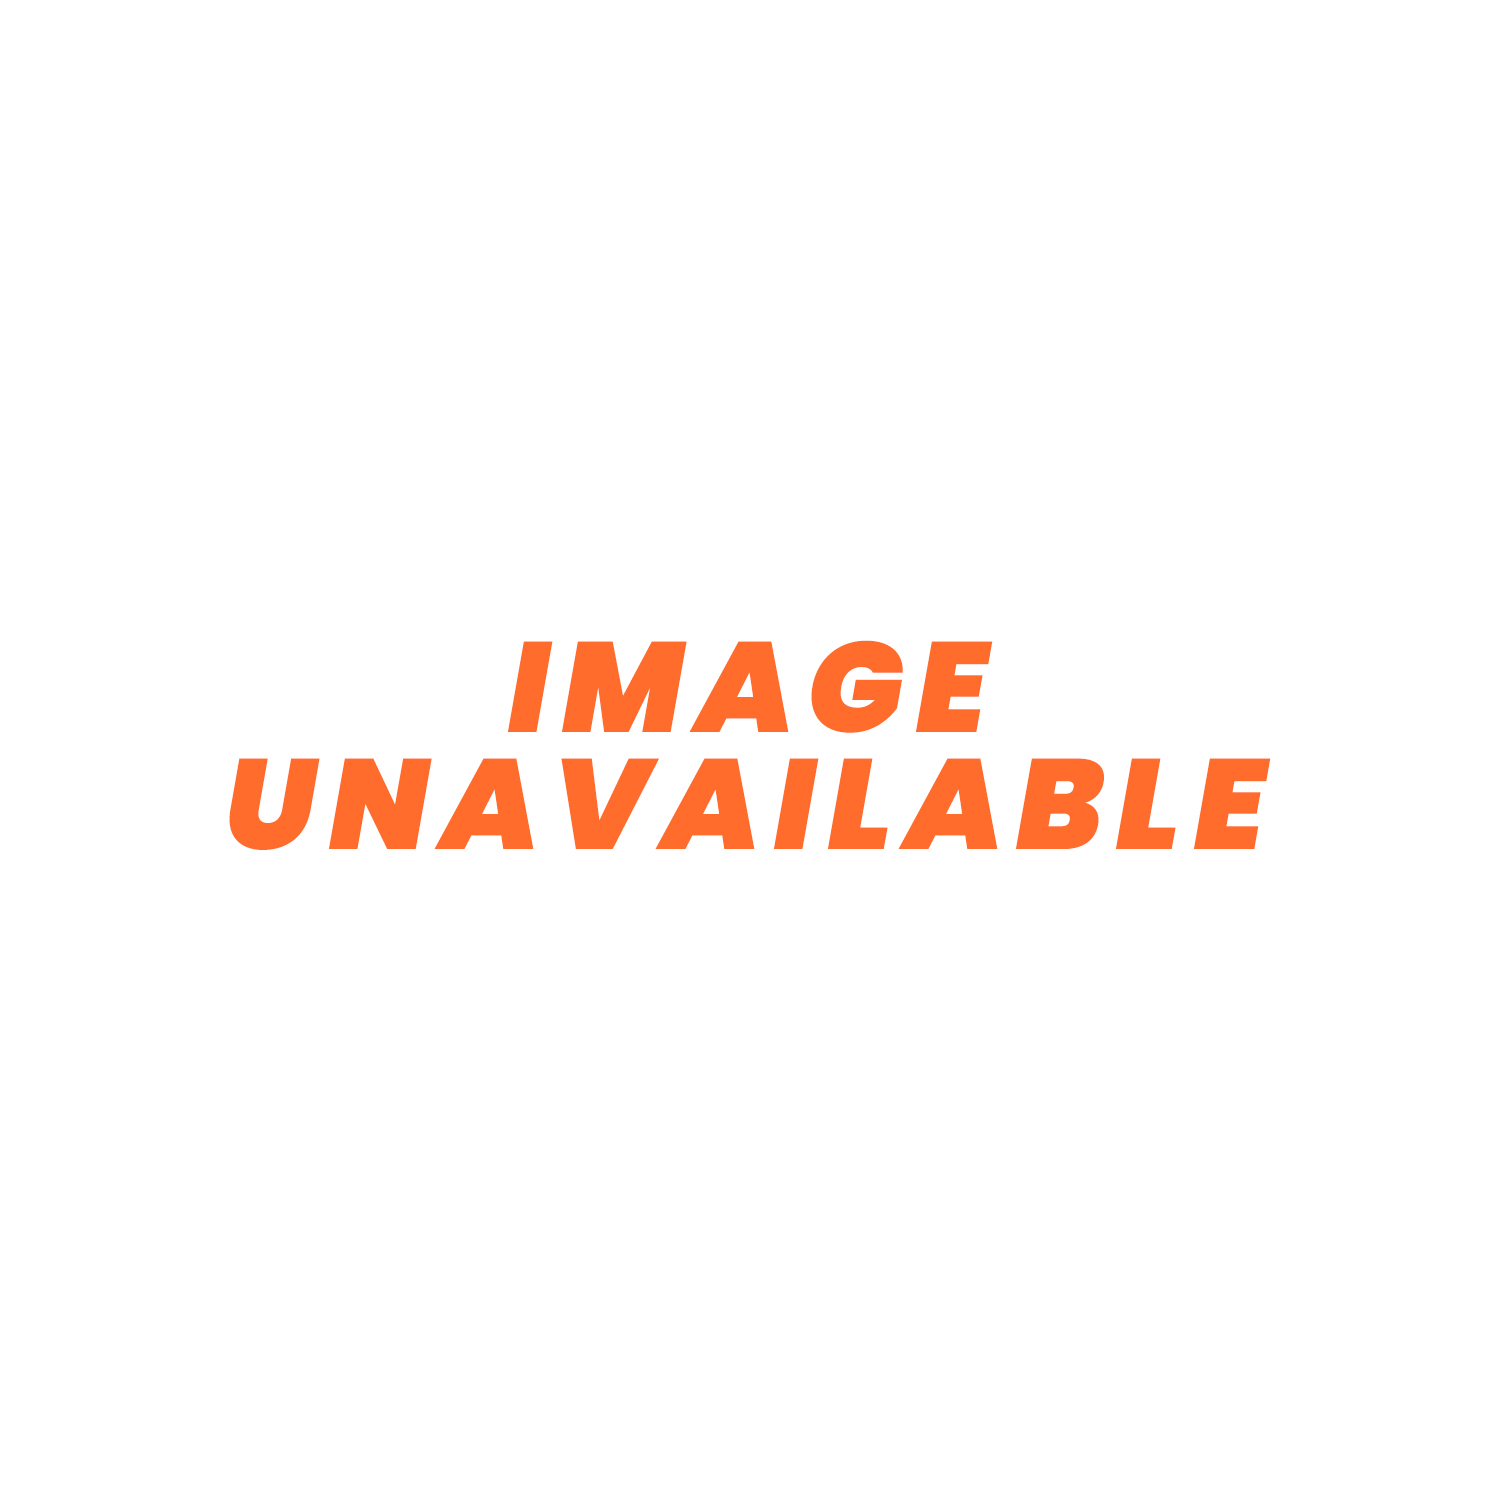 "SPAL Brushless Radiator Fan - 11.0"" (280mm) VA99-ABL315P/N-101A/SH 1447cfm 12v"